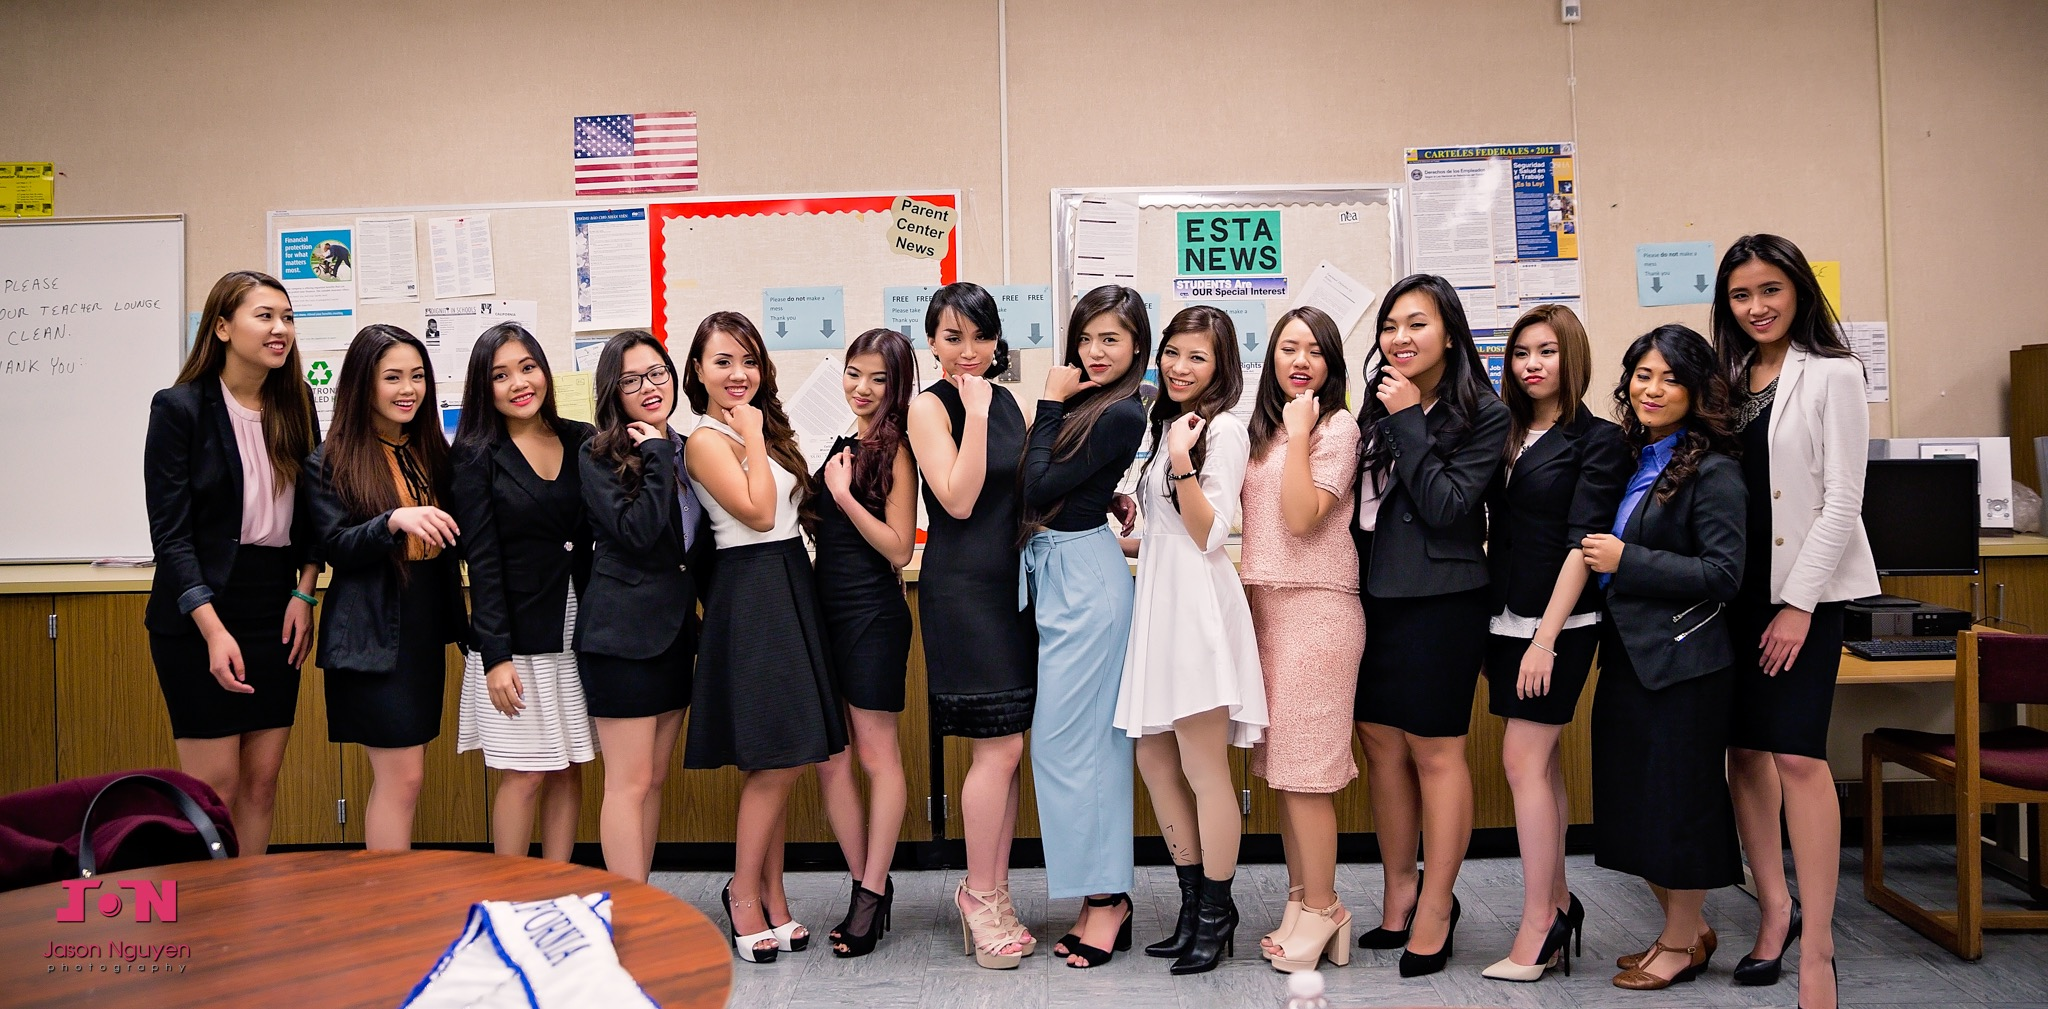 Miss Vietnam California 2016 Contestants Interview with the Judges - Image 144